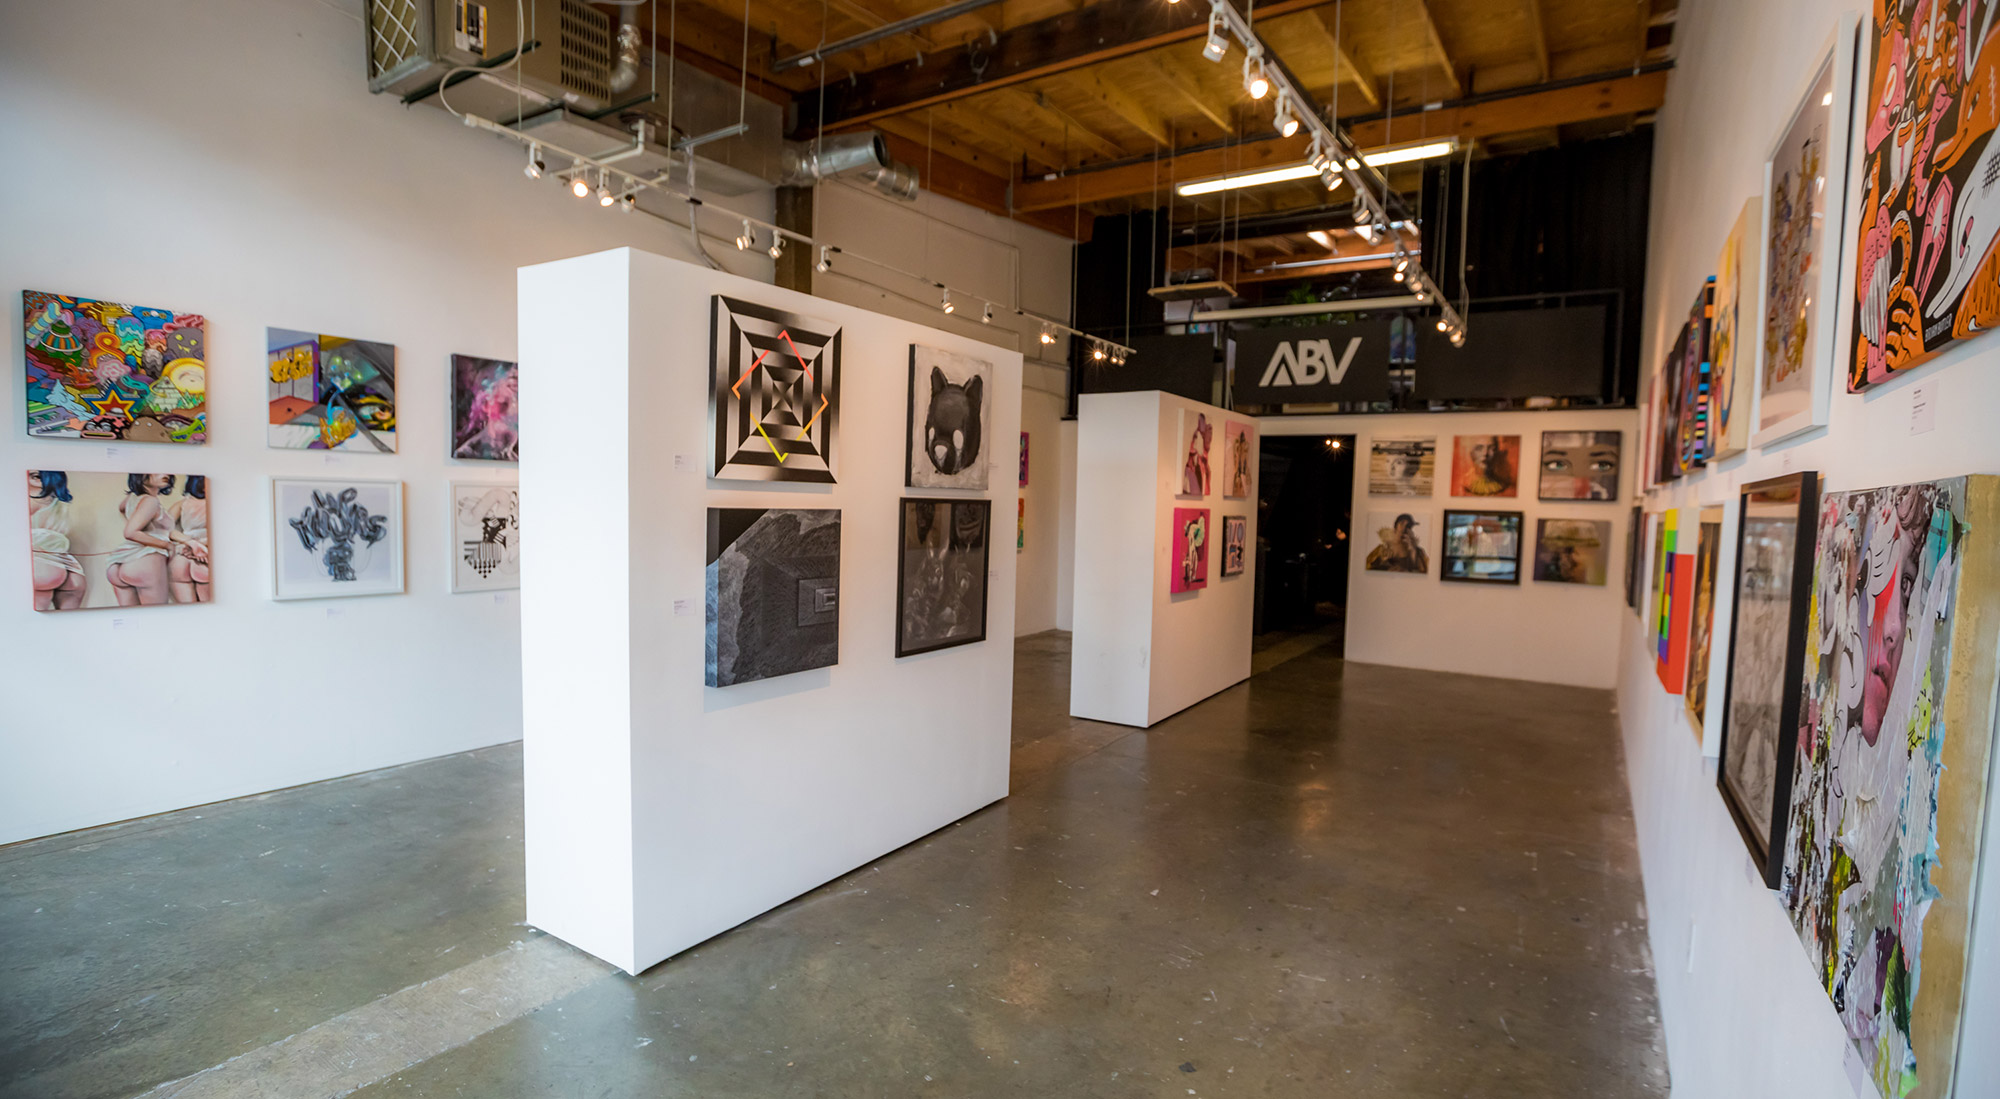 ABV Gallery